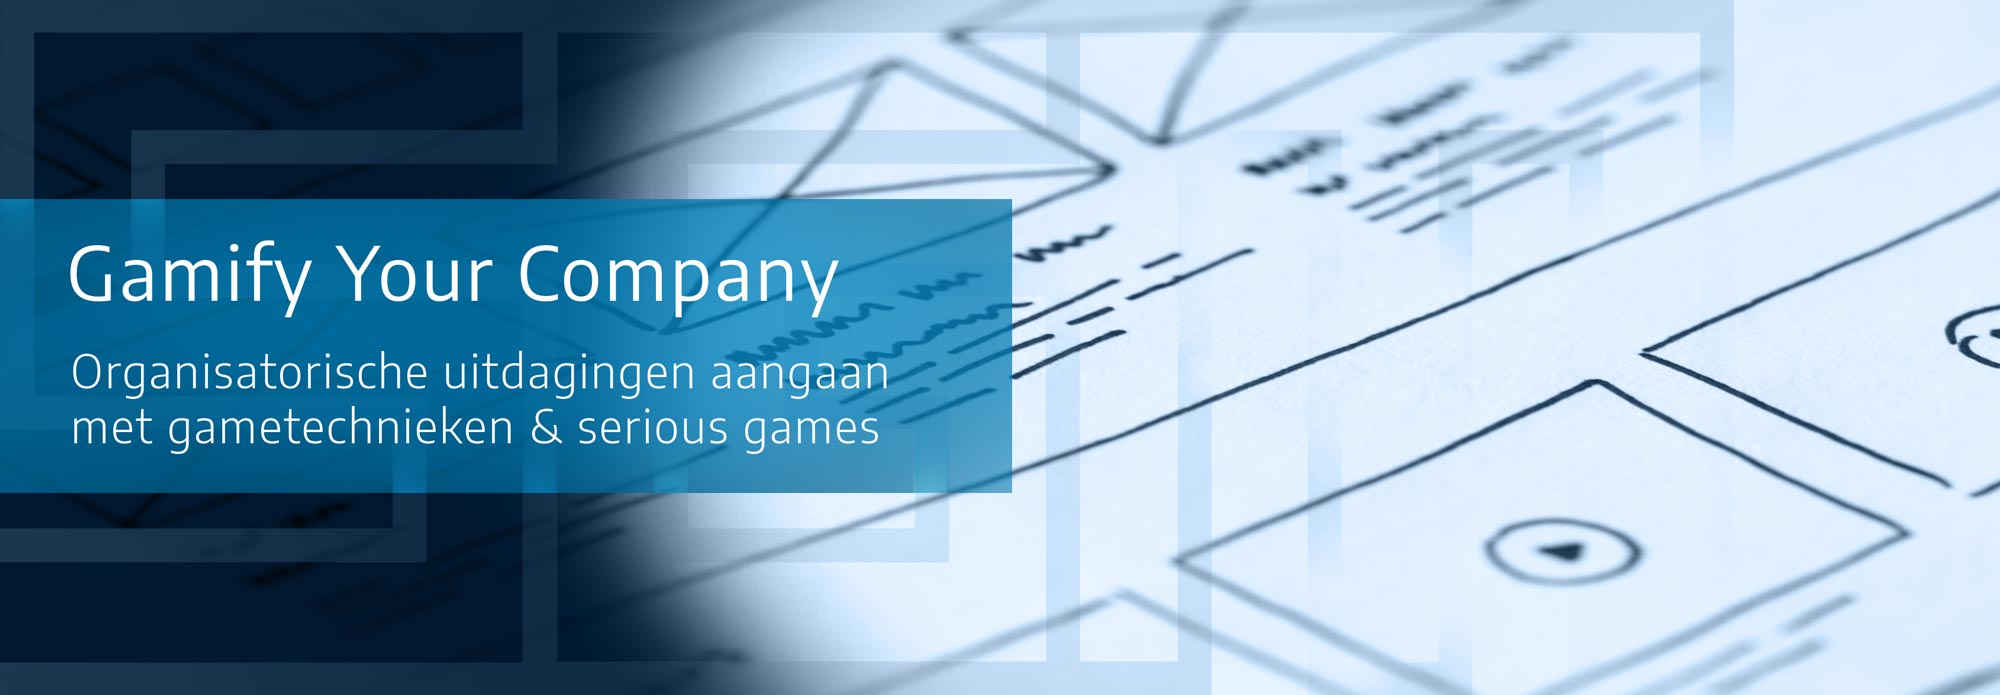 SGM-Gamify-Your-Company